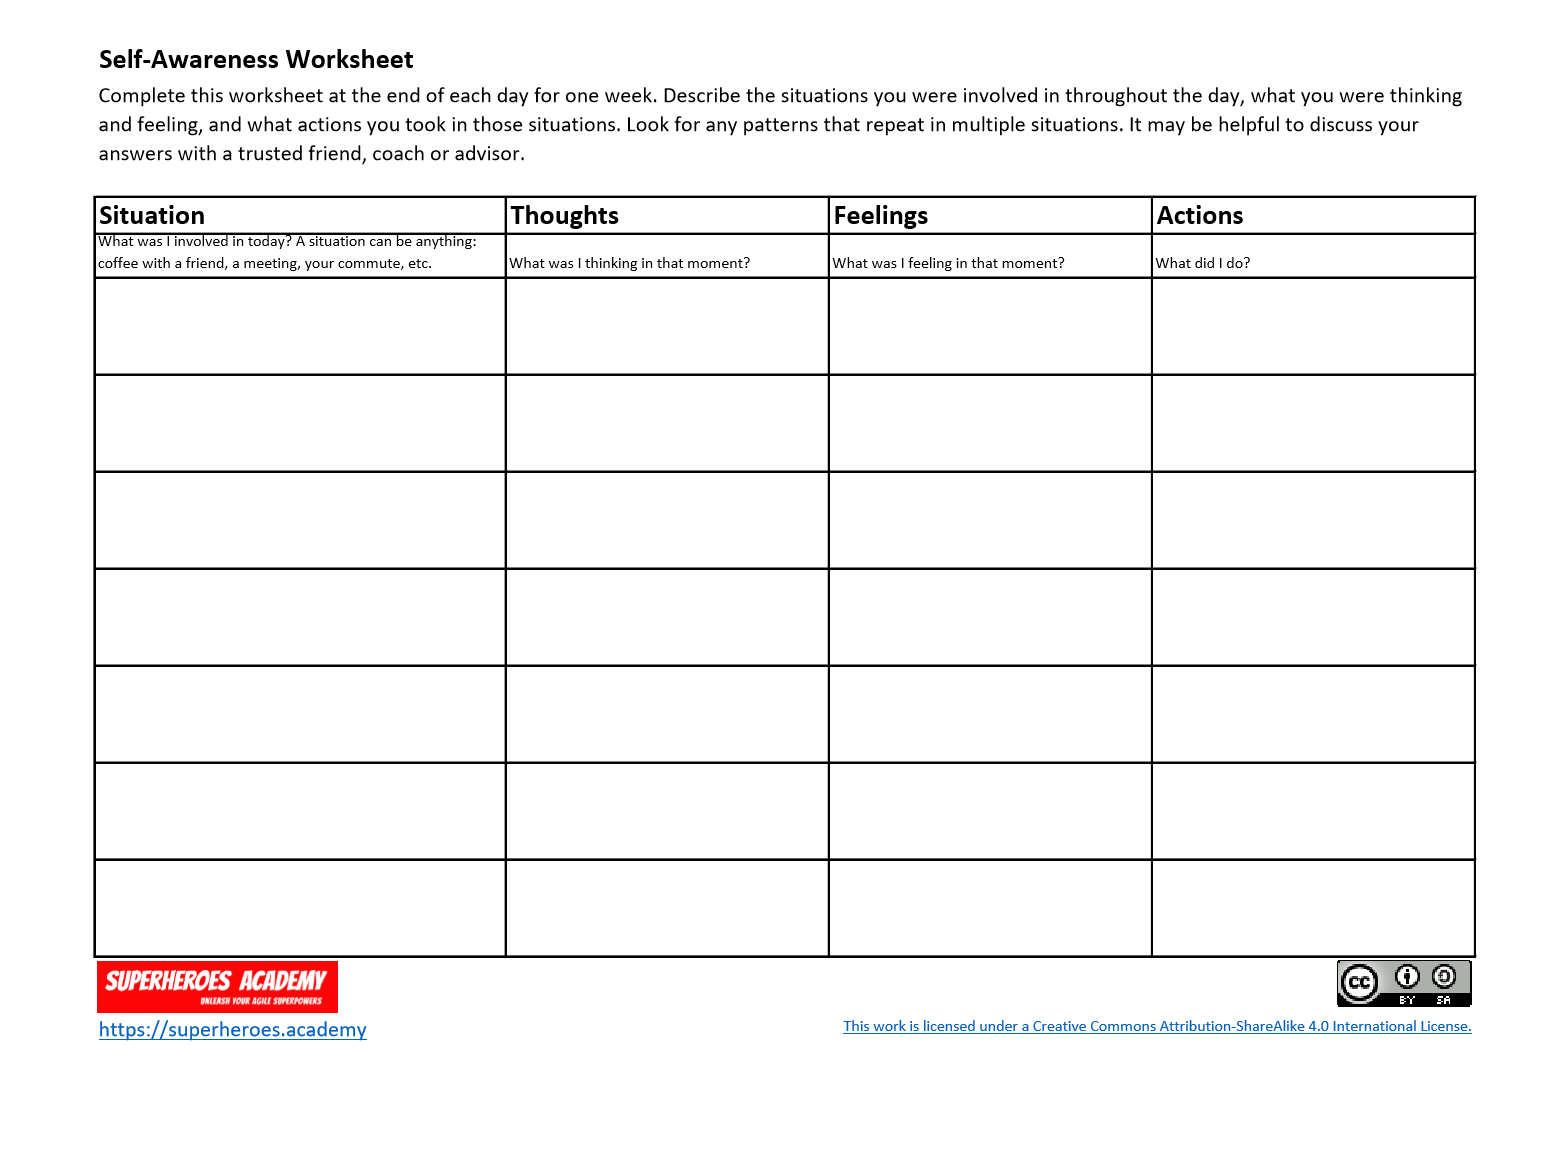 Click here to download the Self-Awareness Worksheet.